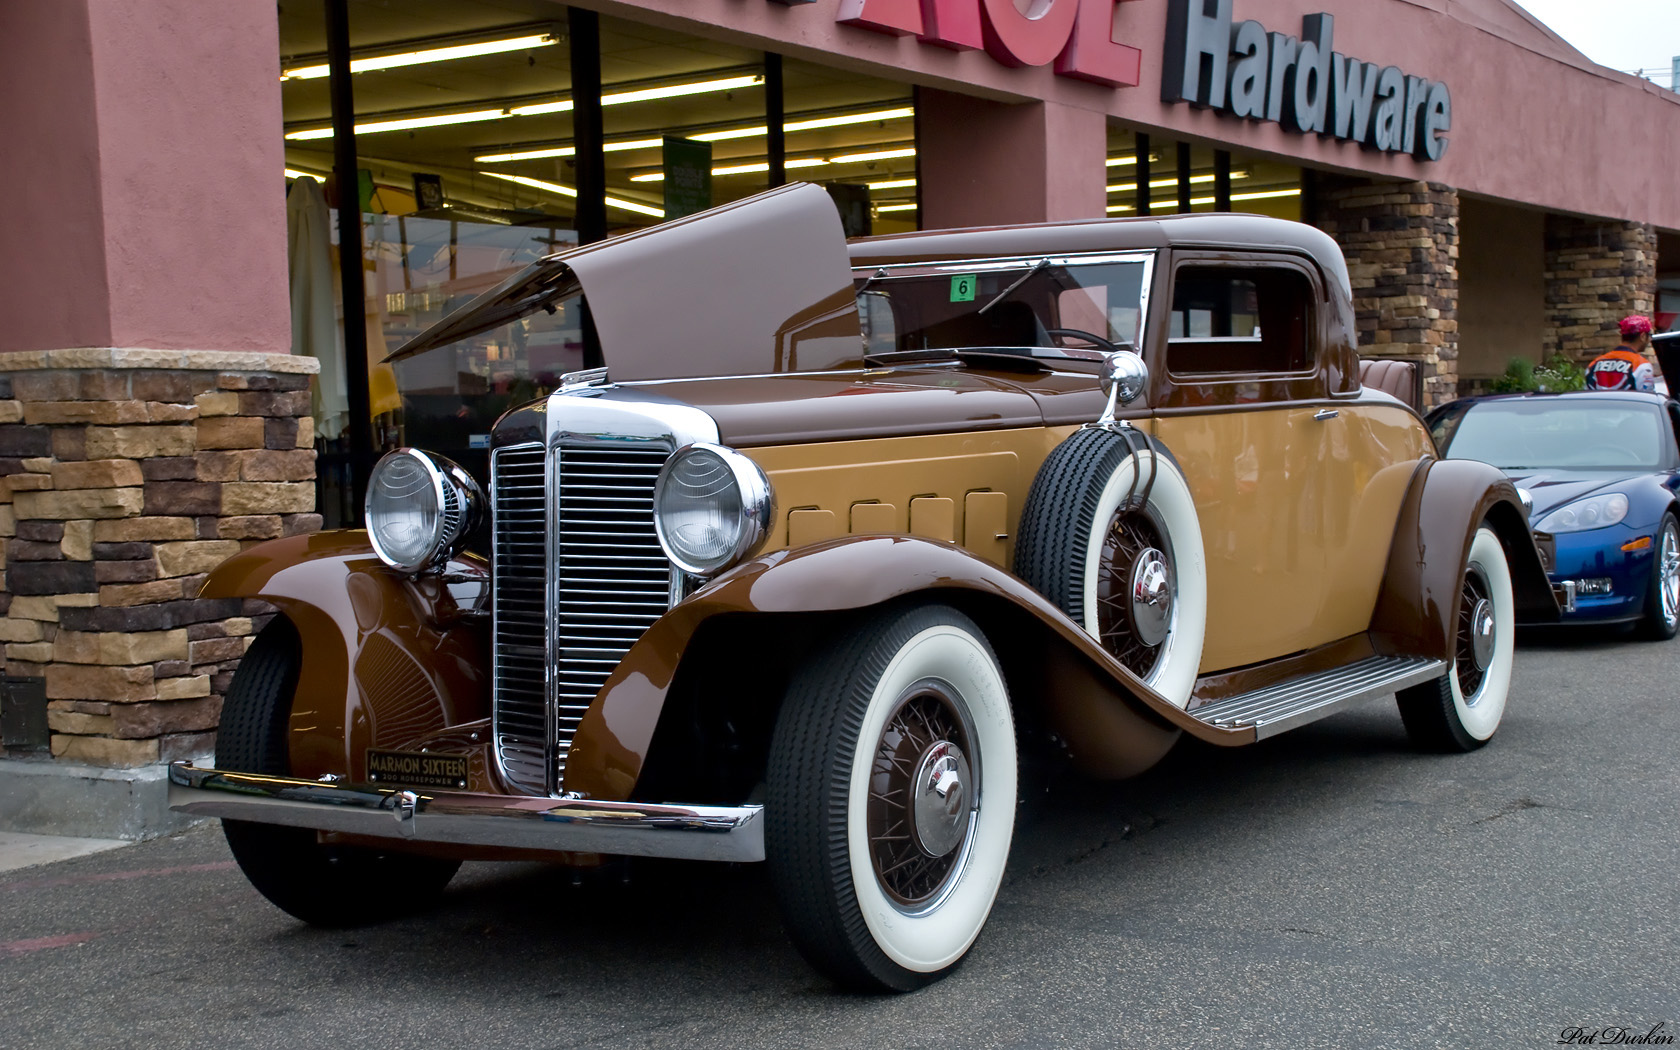 1931 Marmon Sixteen 4 Door Convertible Sedan By LeBaron Backgrounds, Compatible - PC, Mobile, Gadgets  1680x1050 px